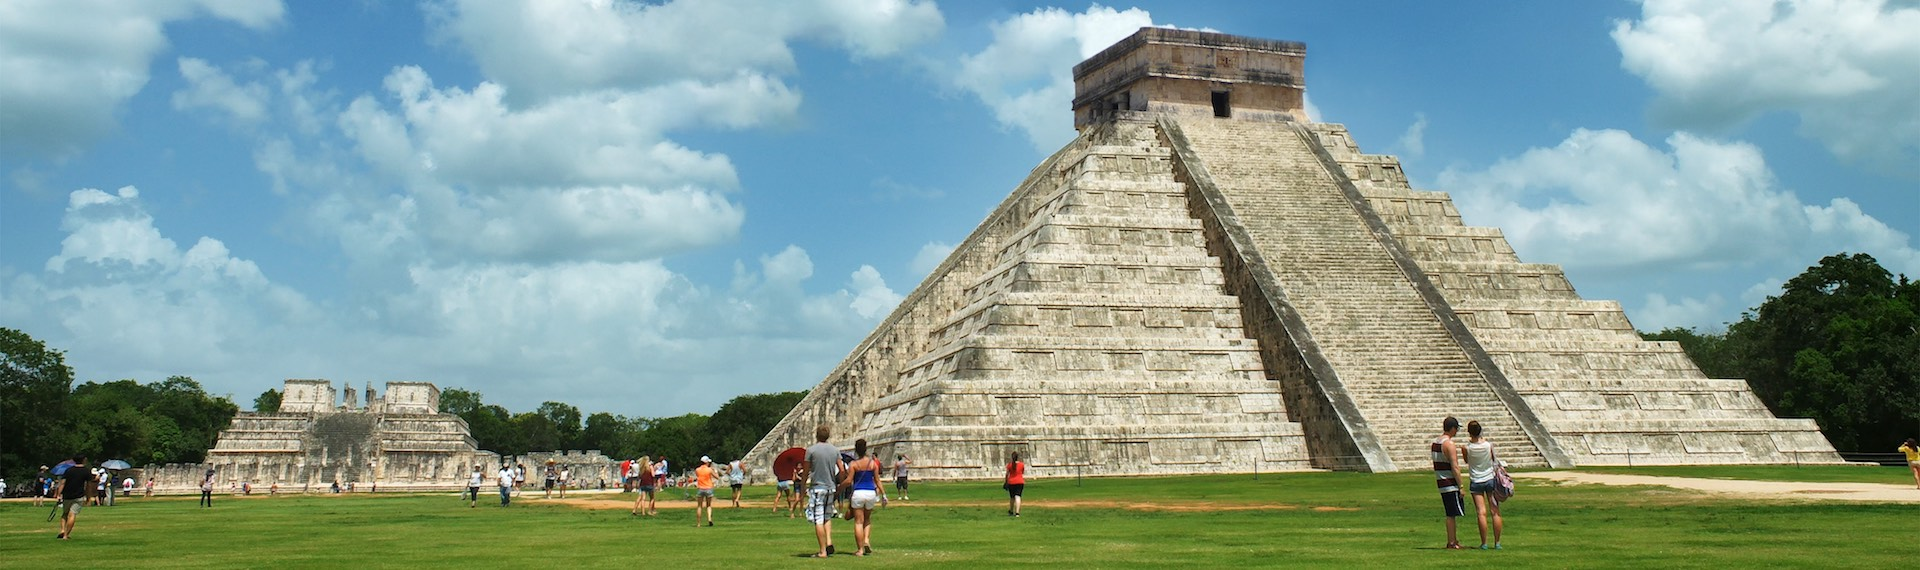 Tours by the Pyramid of Chichen Itza and its ancient Mayan ruins.